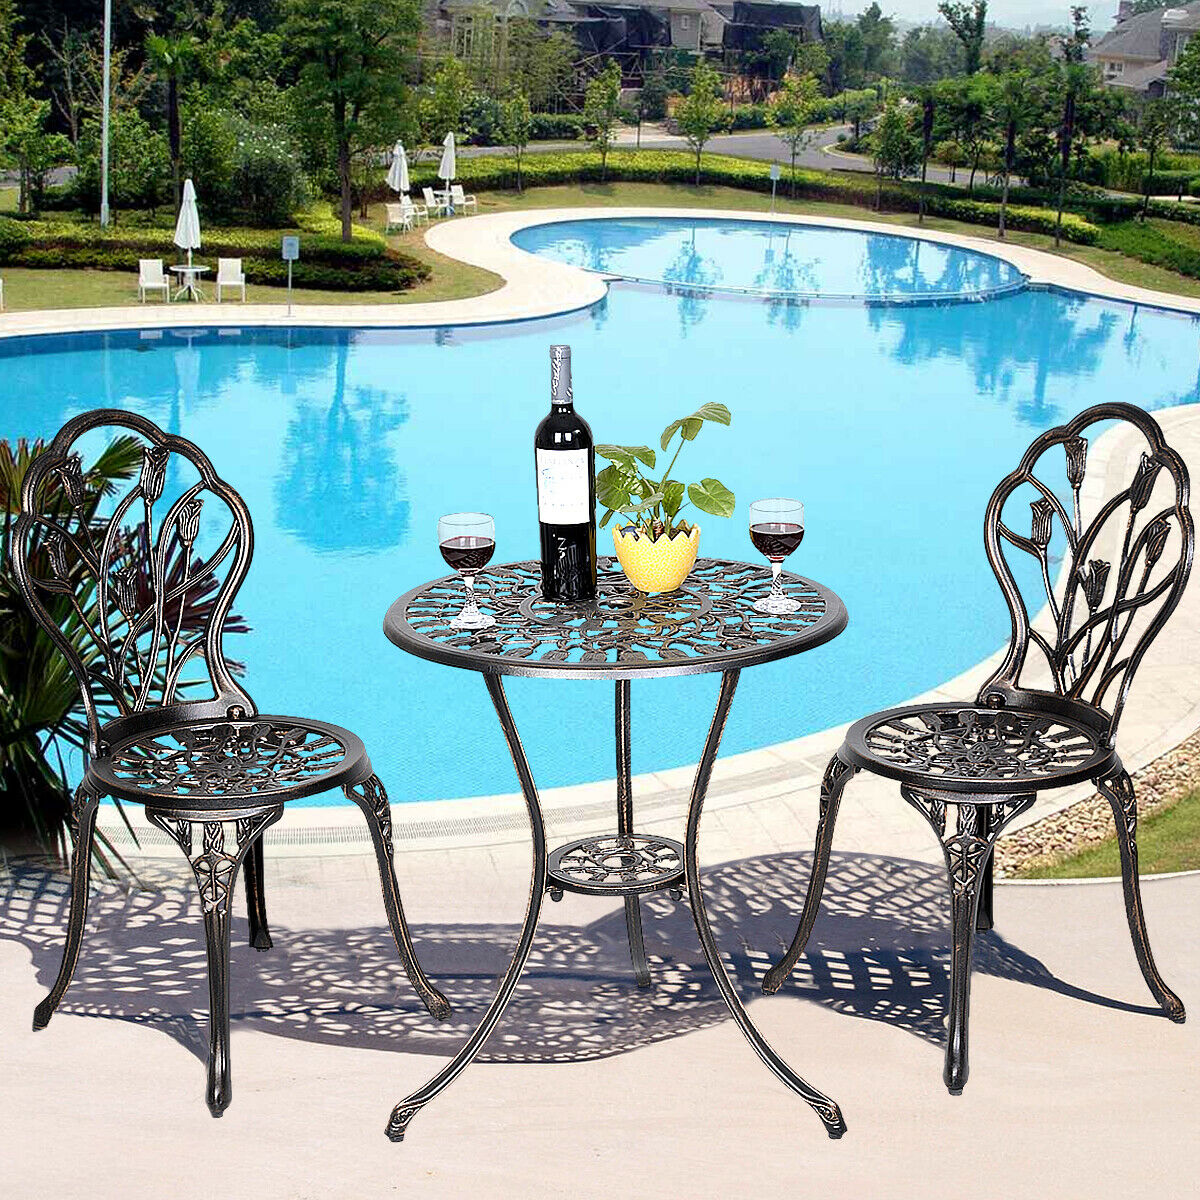 Garden Furniture - Garden Outdoor Patio Furniture Tulip Design Cast Aluminum Café Bistro Set